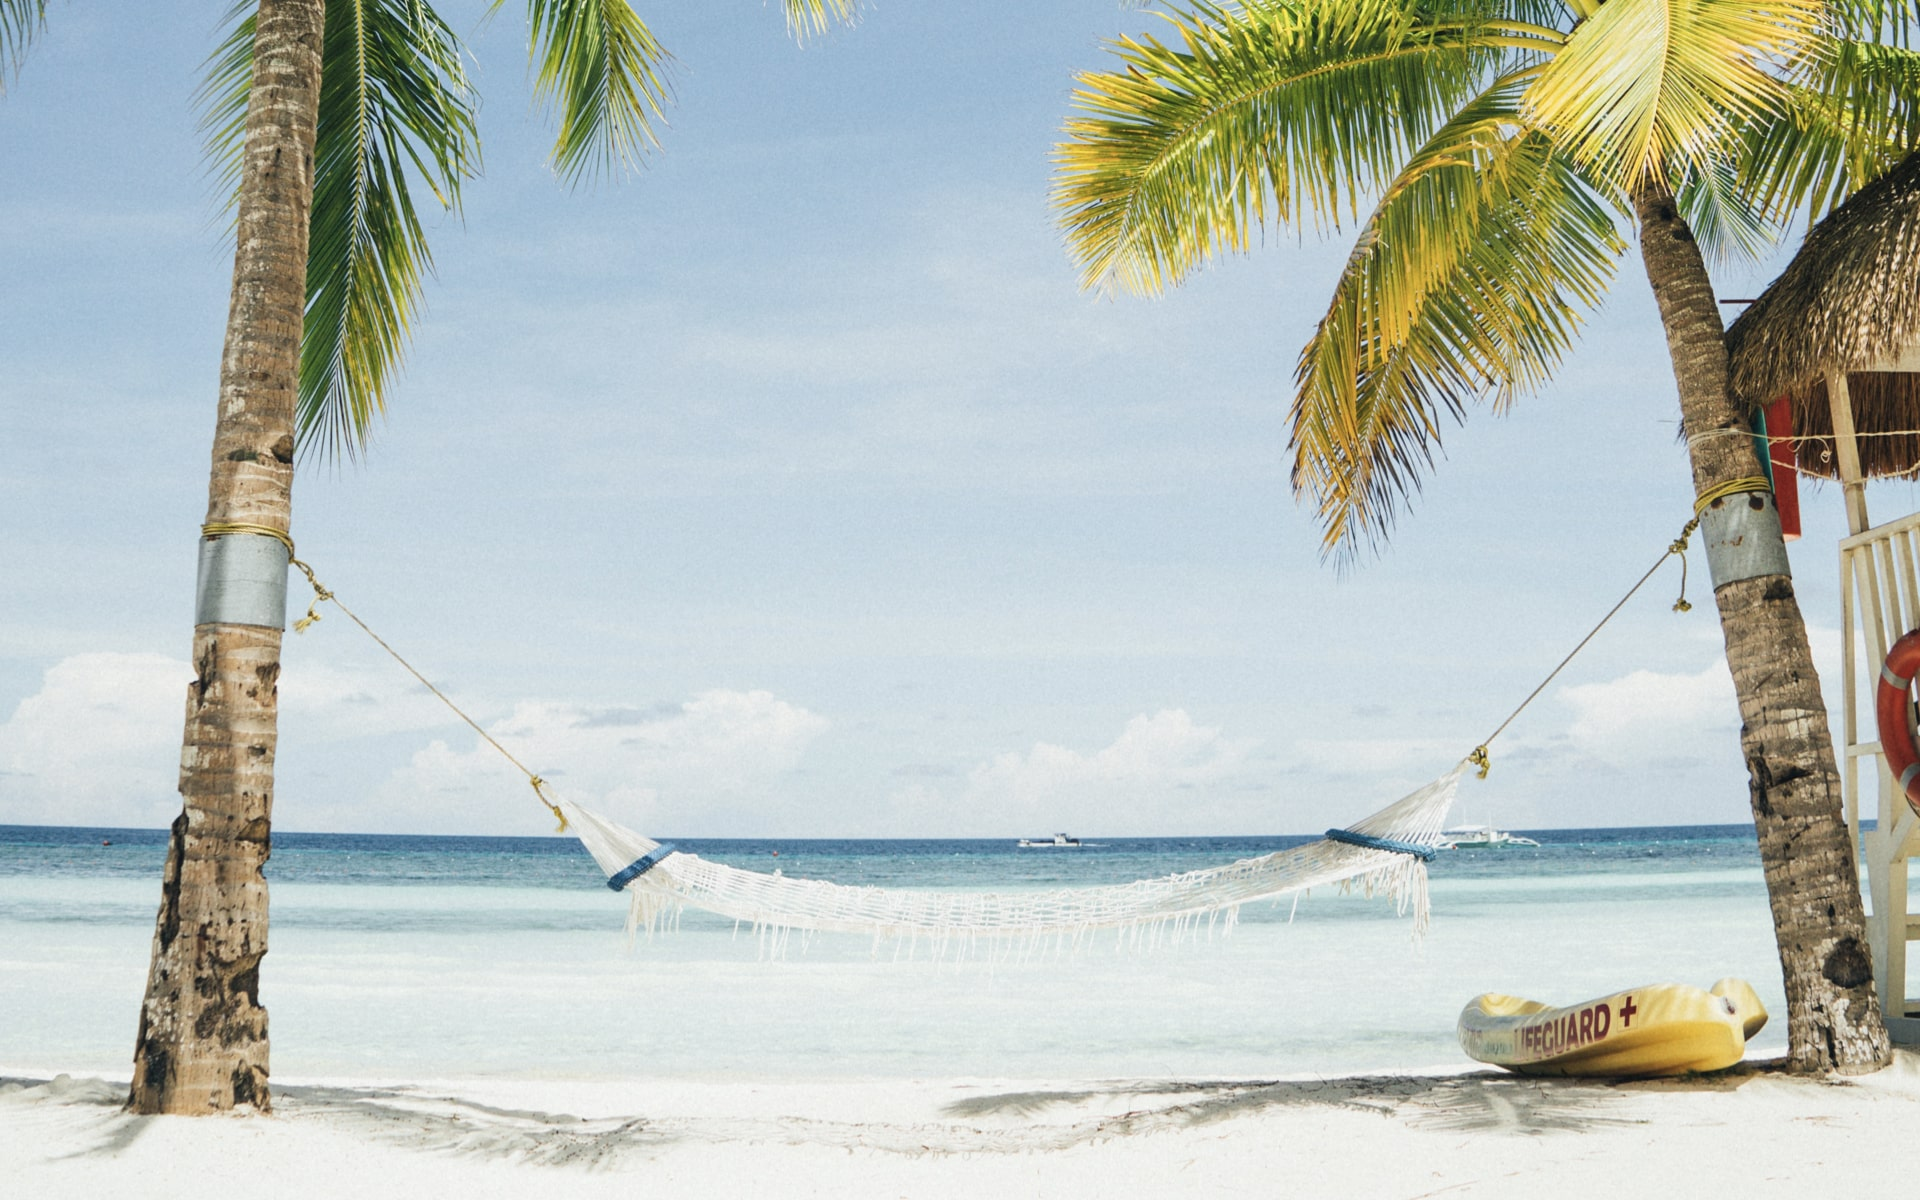 Planning To Go To Jamaica   Here Are The Top Things You Should Do On Your Trip